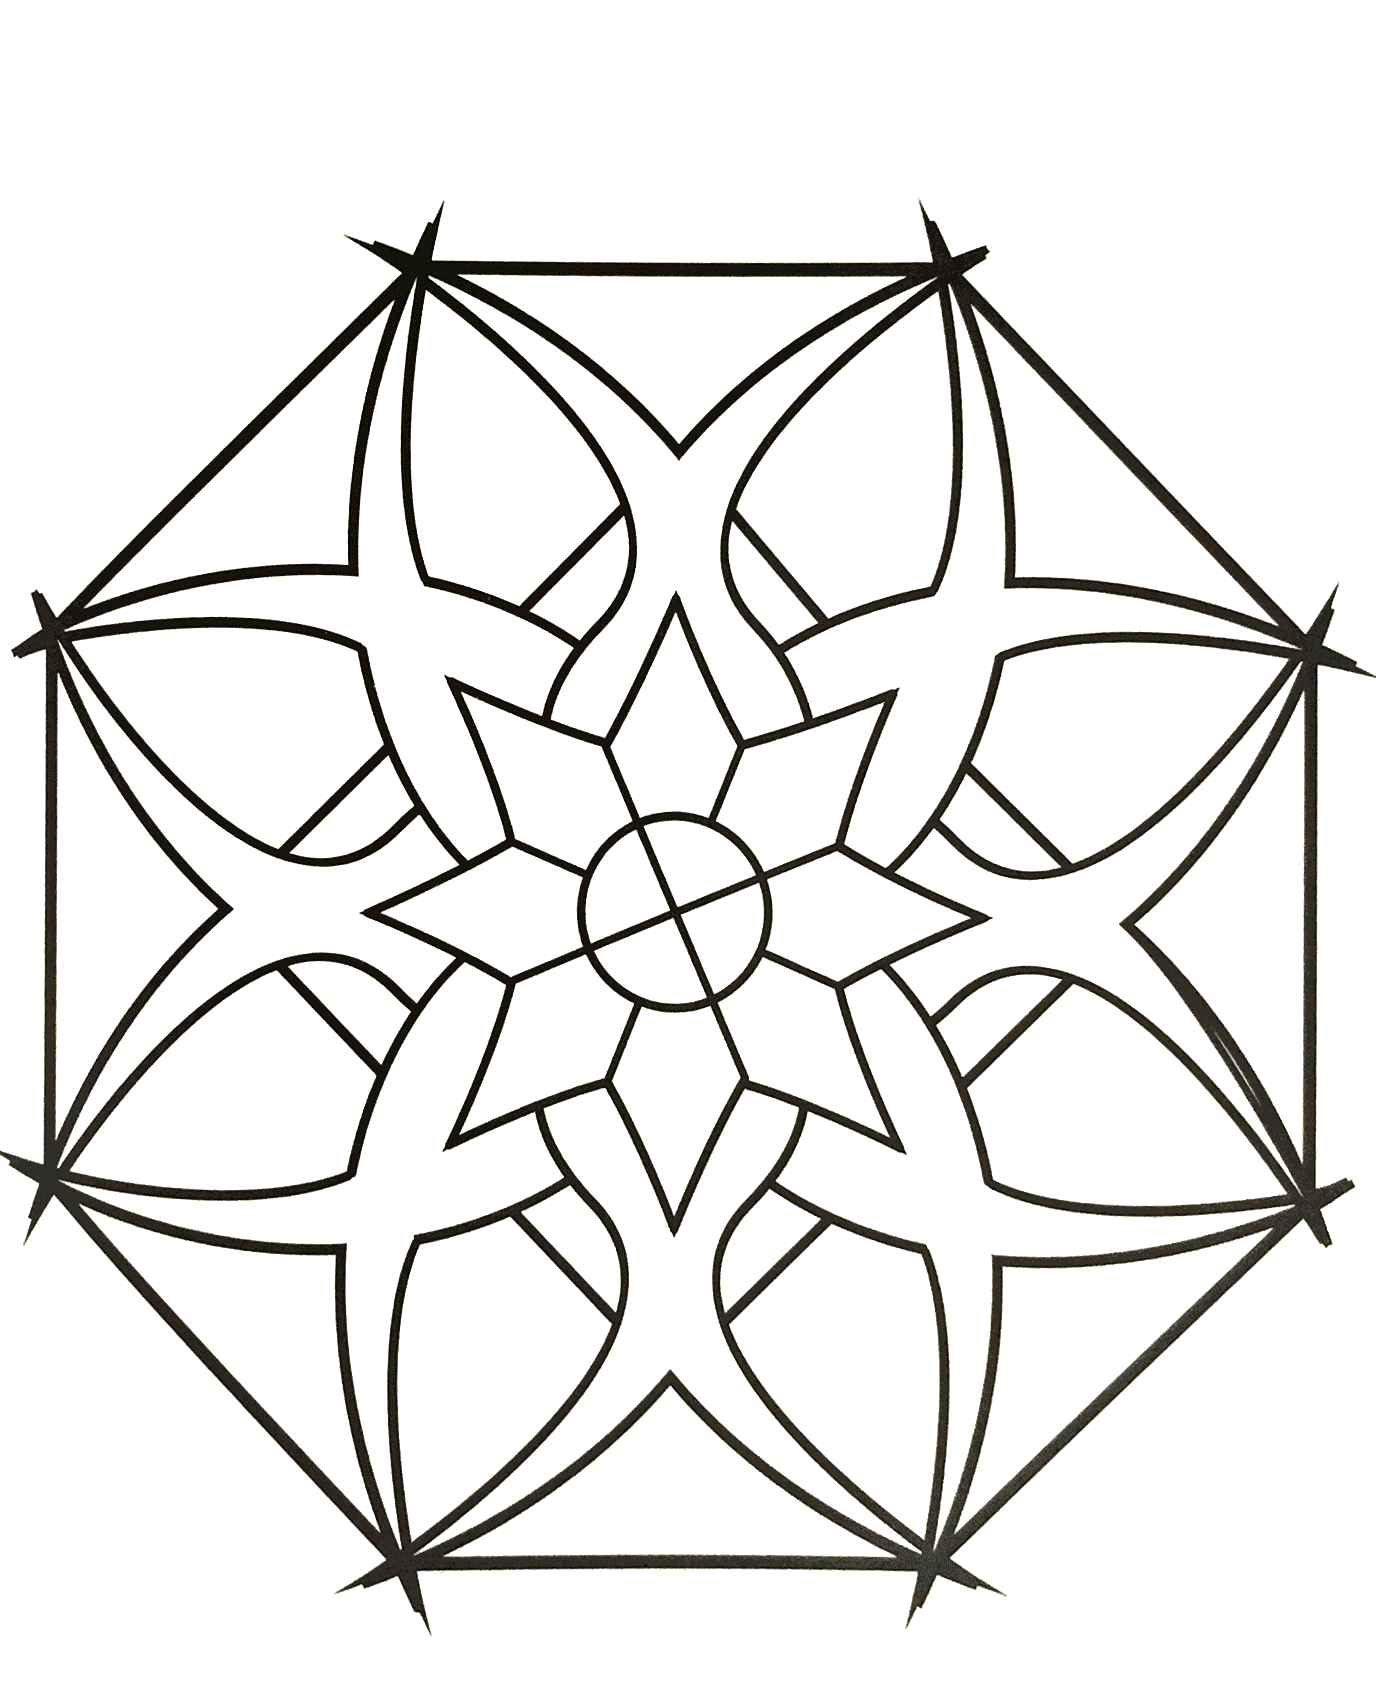 Simple mandala 87 - New Free & exclusive Coloring pages ... | free printable mandala coloring pages for adults easy